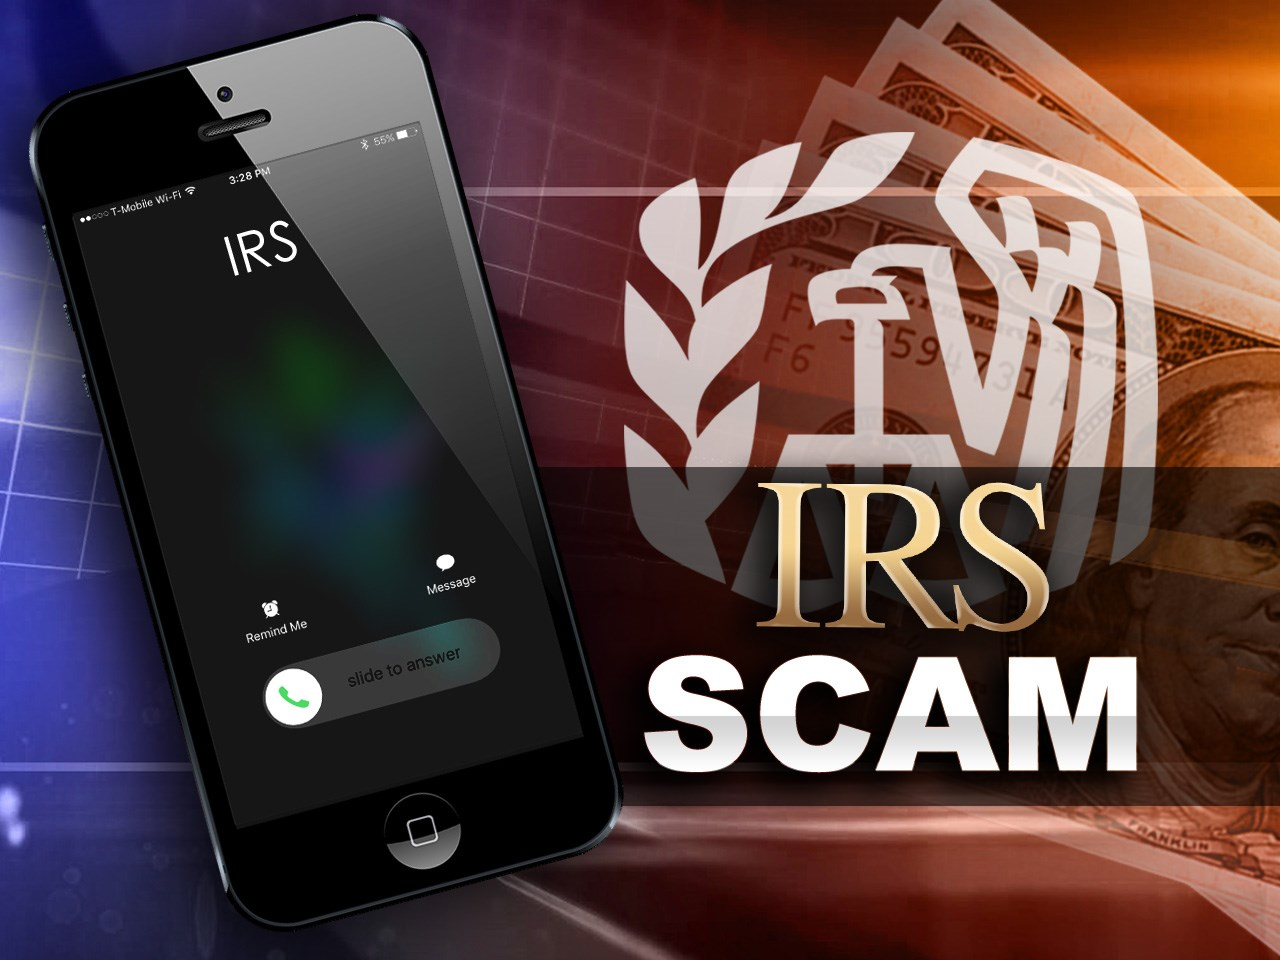 IRS Phone Scams